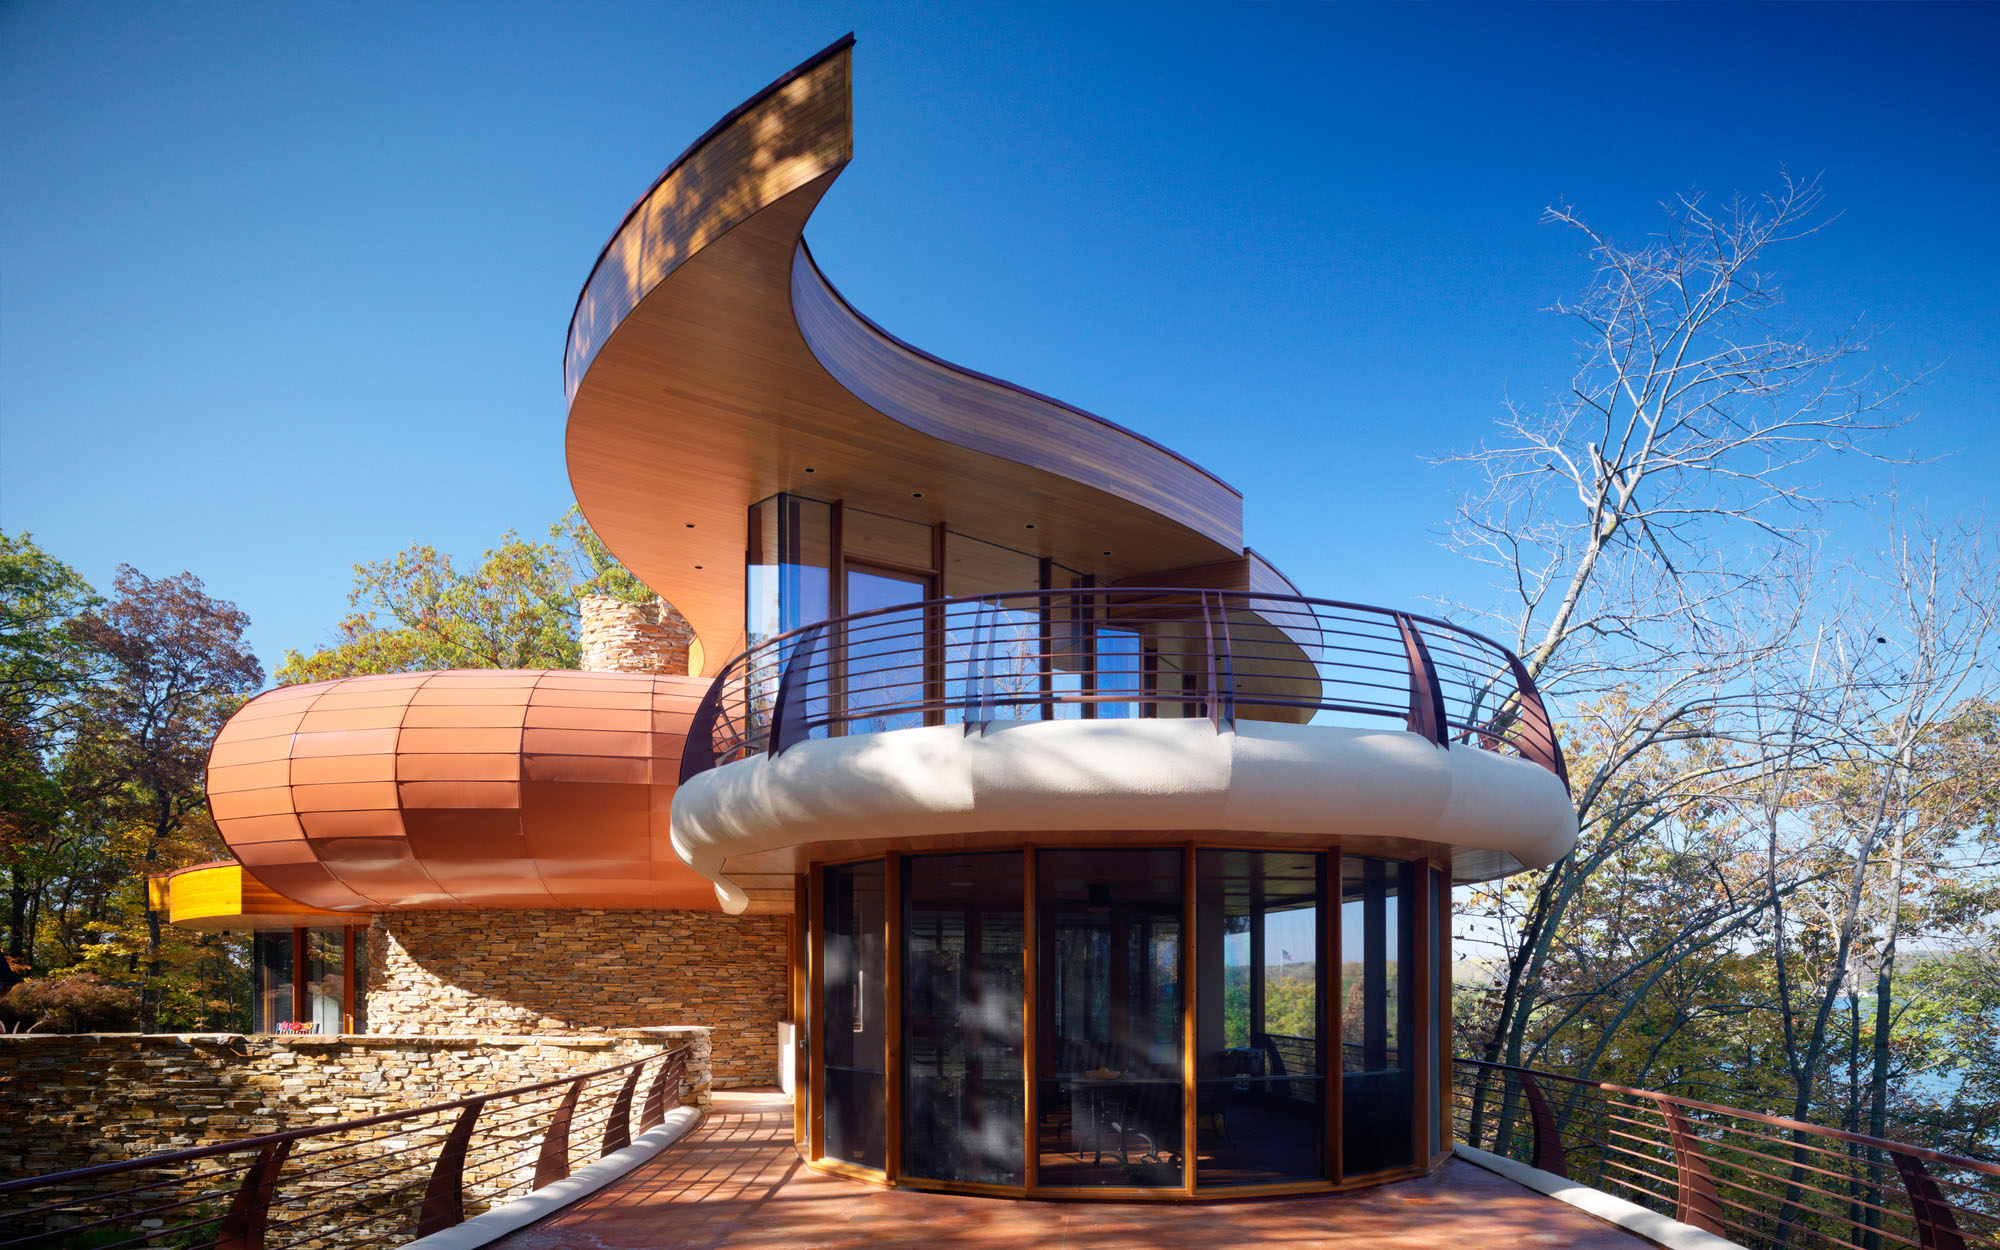 Unique Home Twisting Architecture